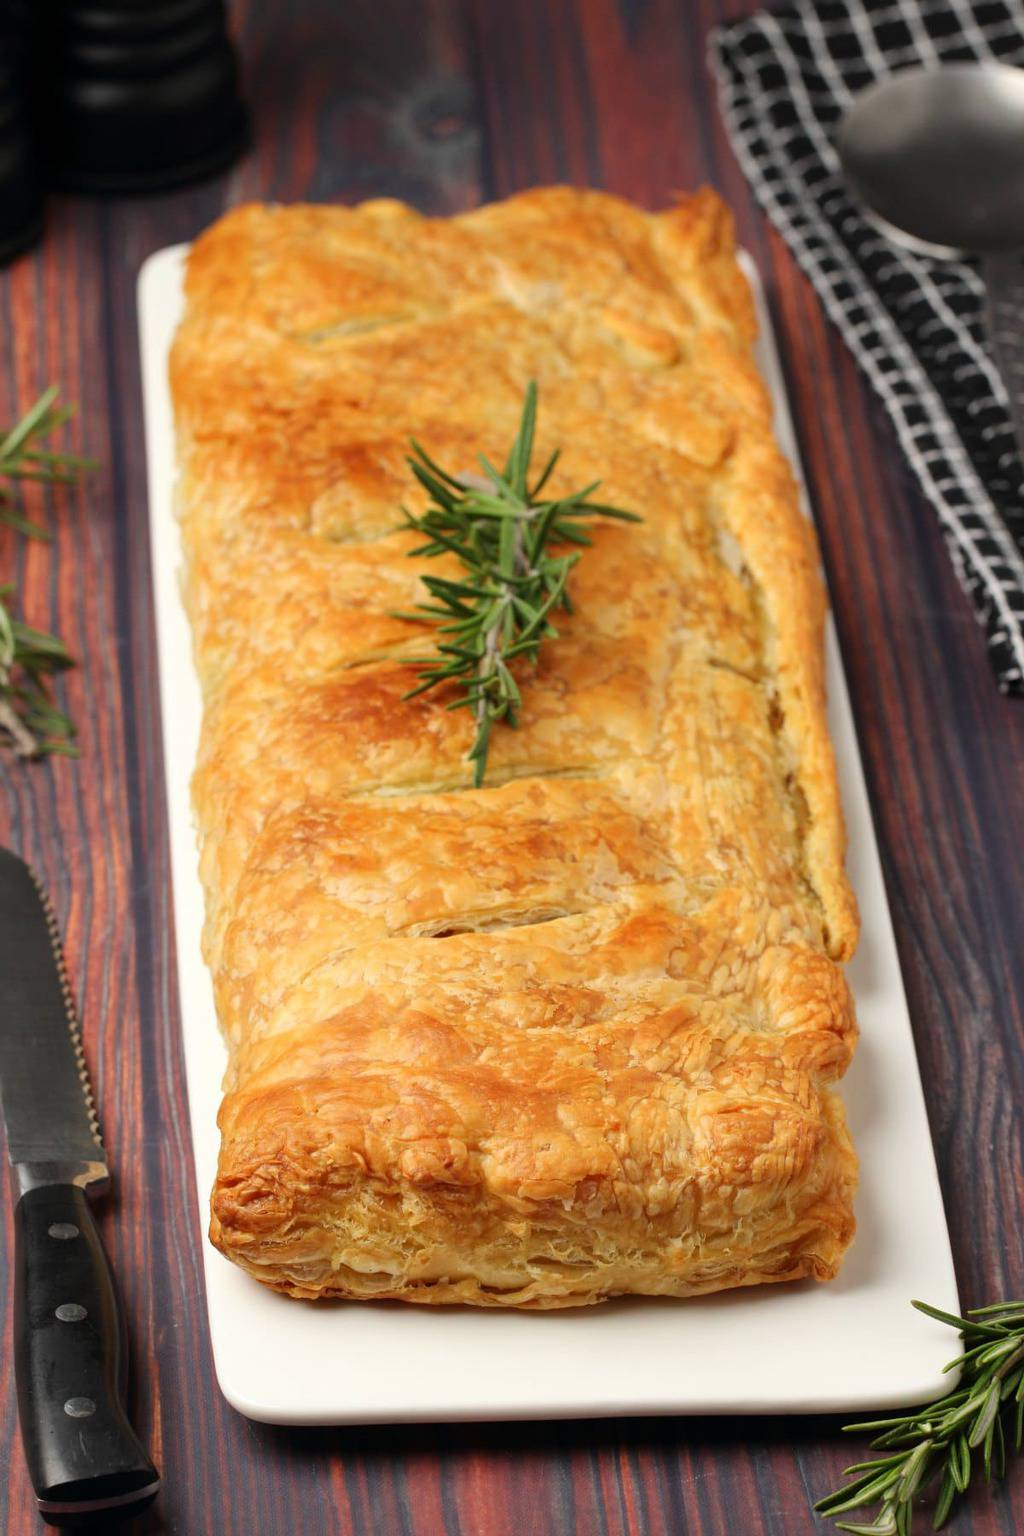 Vegan wellington topped with a sprig of fresh rosemary on a white plate.